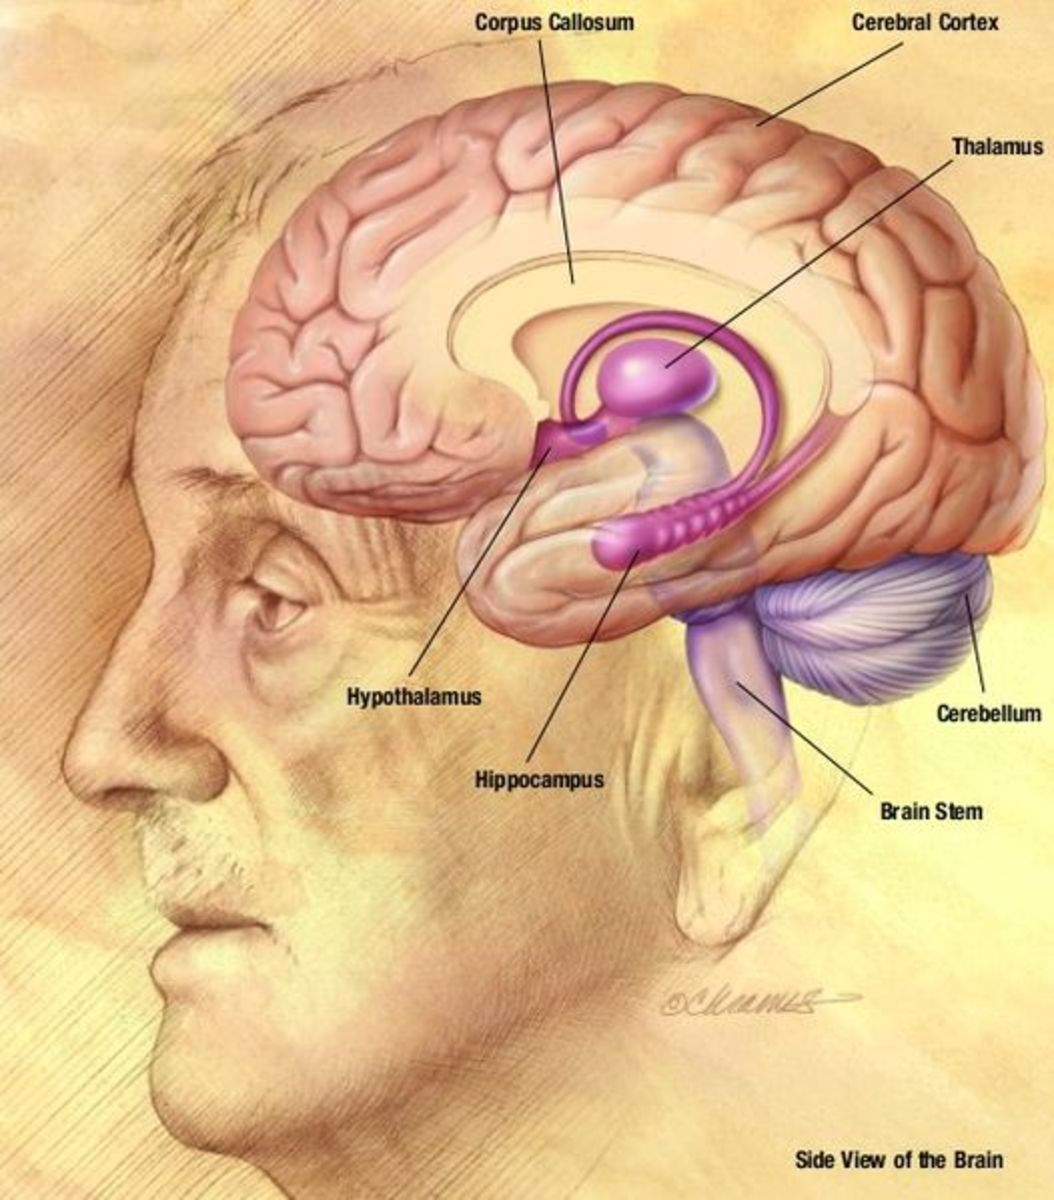 Labelled diagram of the human brain